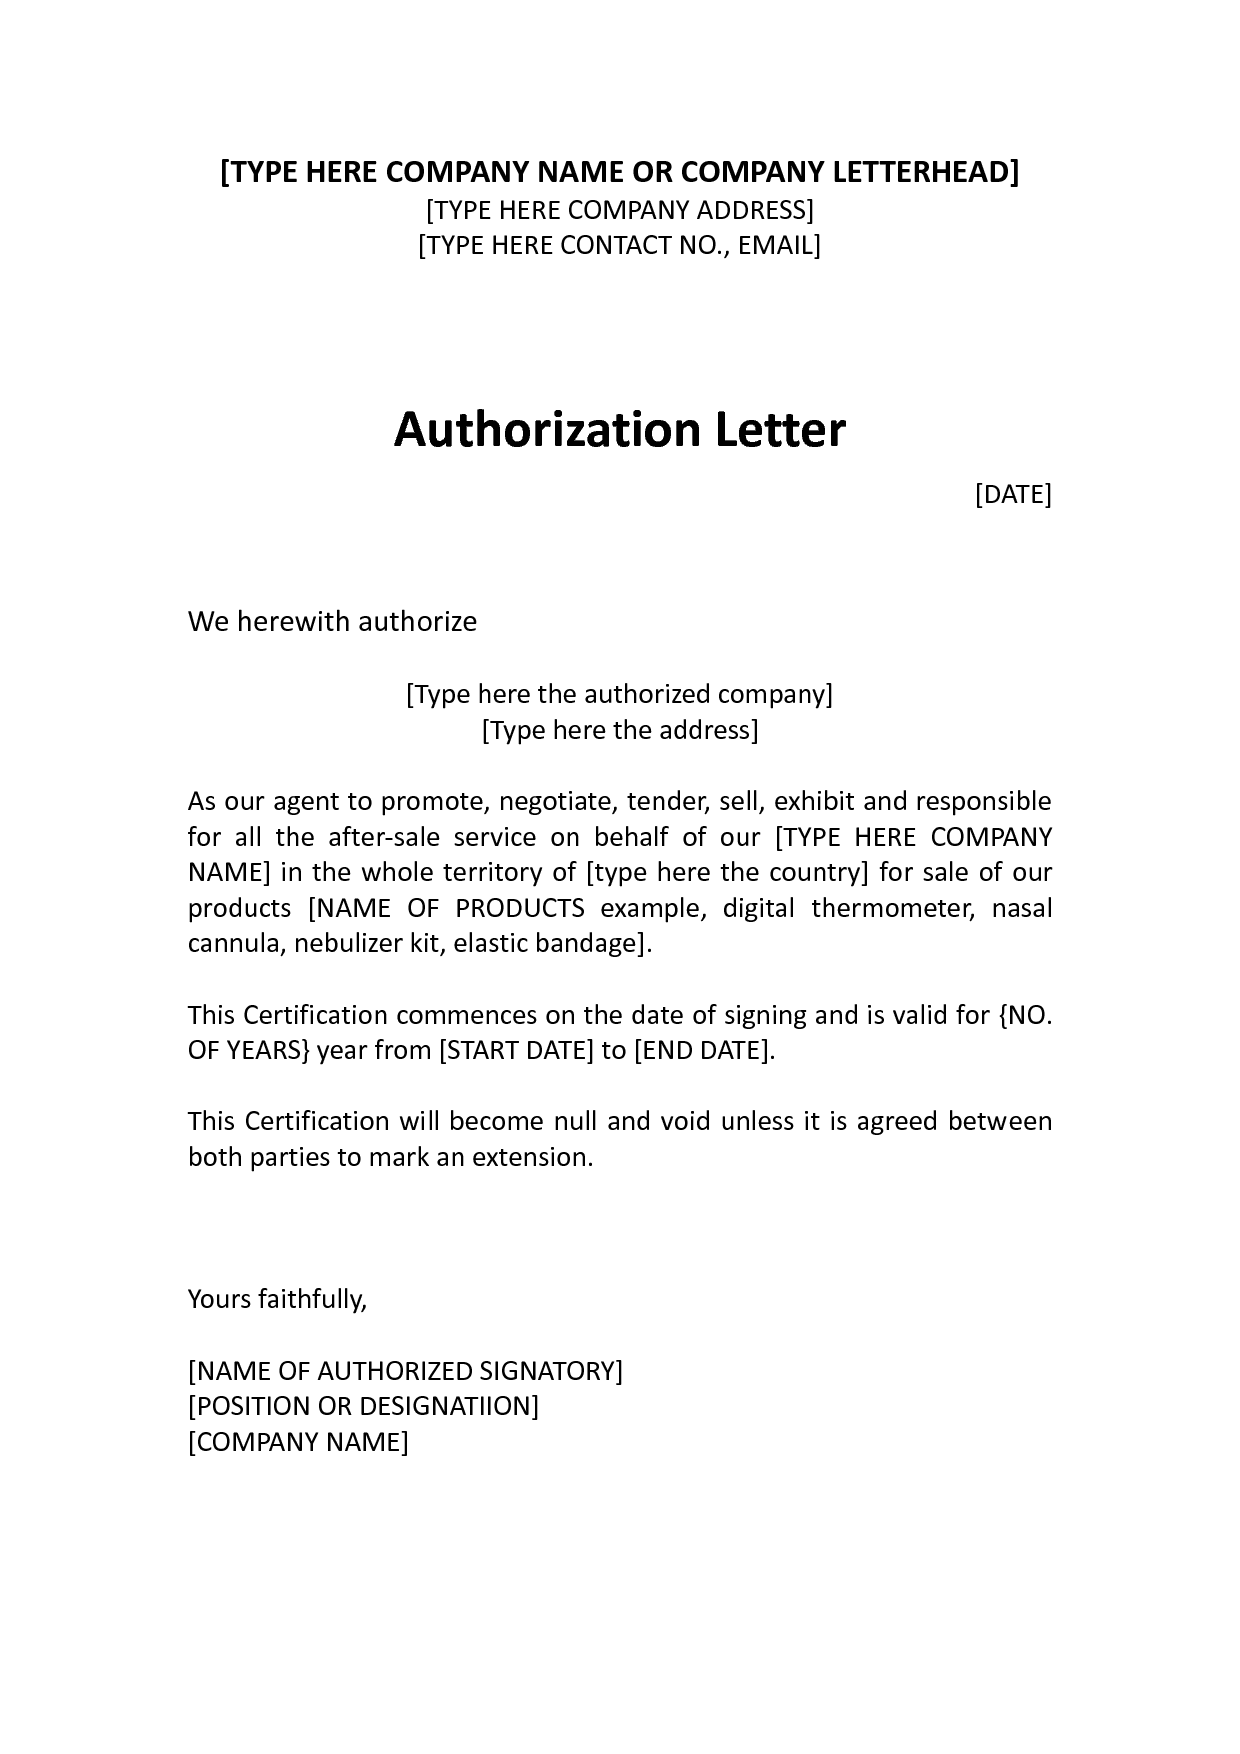 Authorization distributor letter sample distributor - Standard bank head office contact details ...